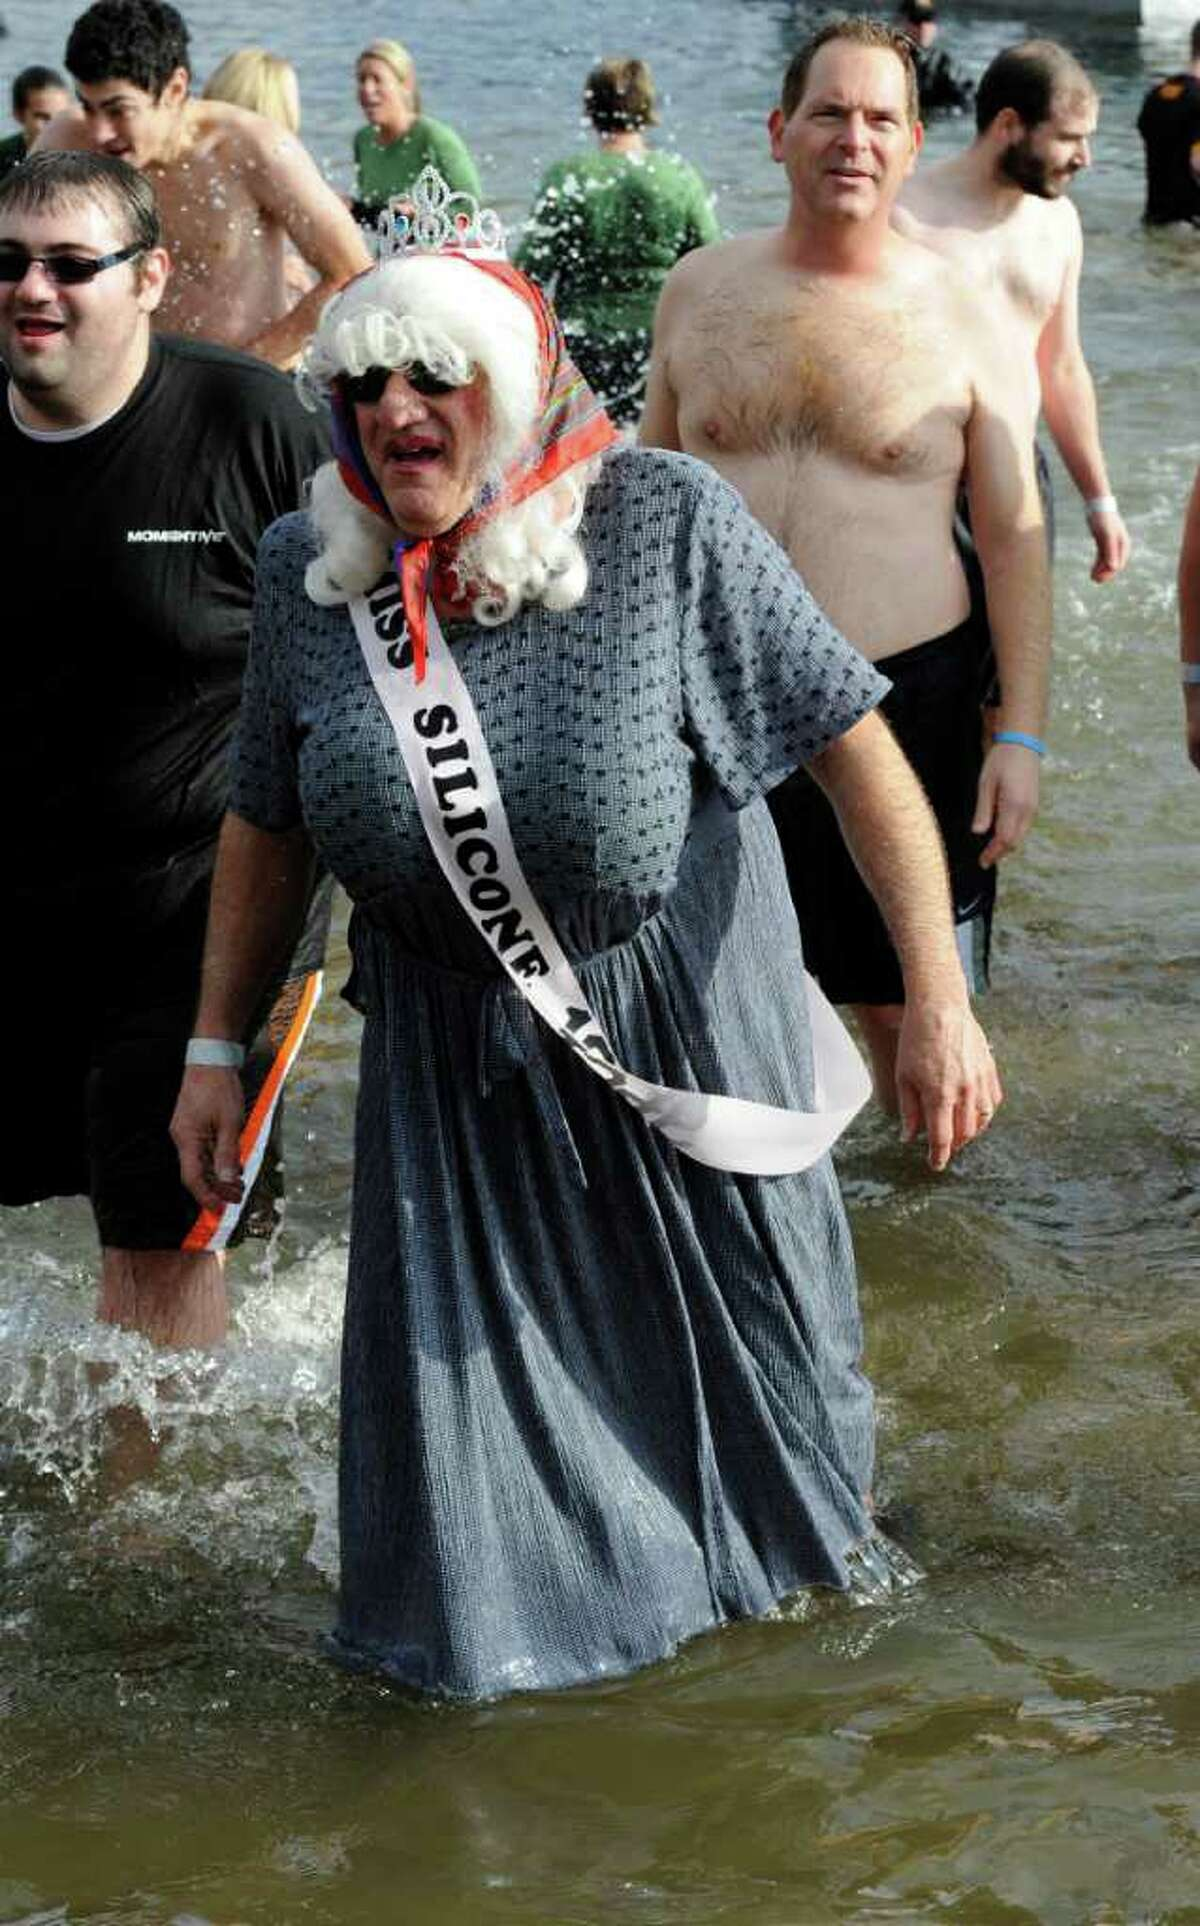 Wearing the sash of Miss Silicone 1949 is Ken Mavica who is fundraising with others from the Momentive Company while in the lake during the